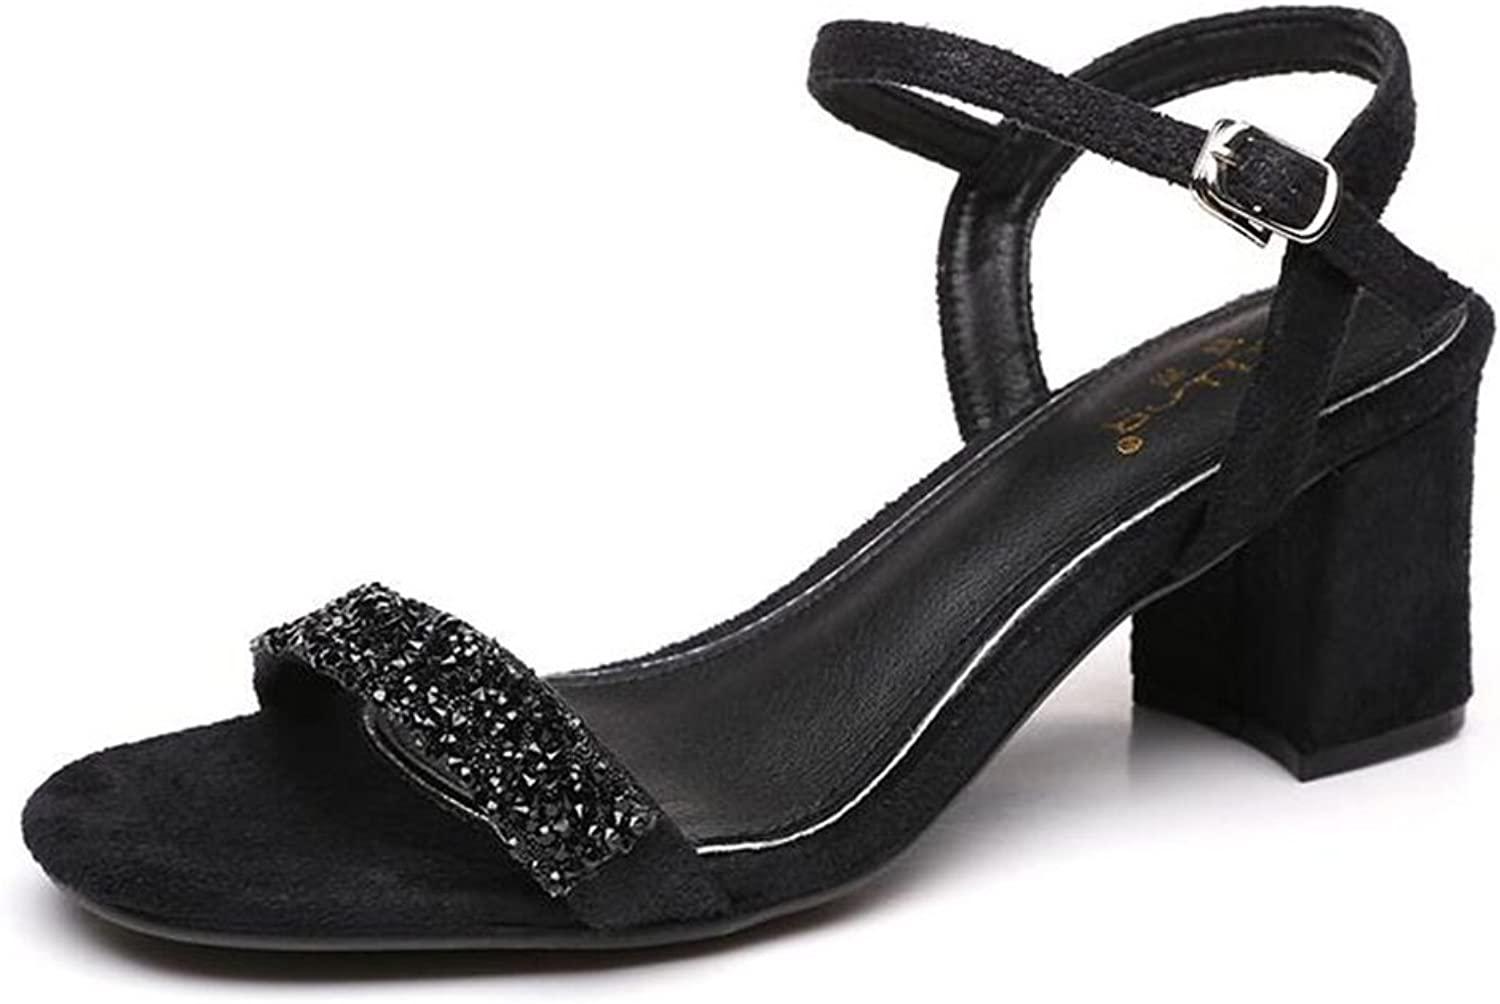 Jinsen Summer Sandals Female with A Buckle Buckle with Rhinestones Black Late Evening Ladies shoes